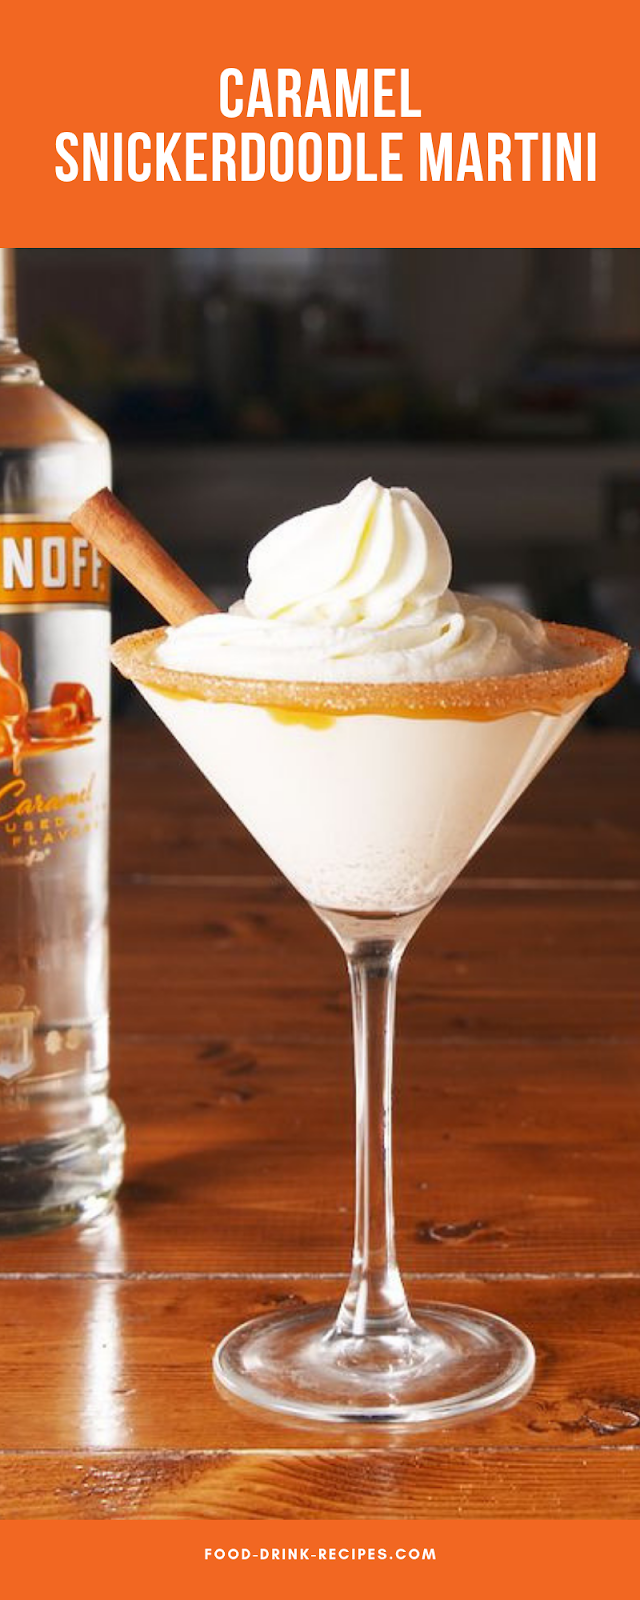 Caramel Snickerdoodle Martini - food-drink-recipes.com